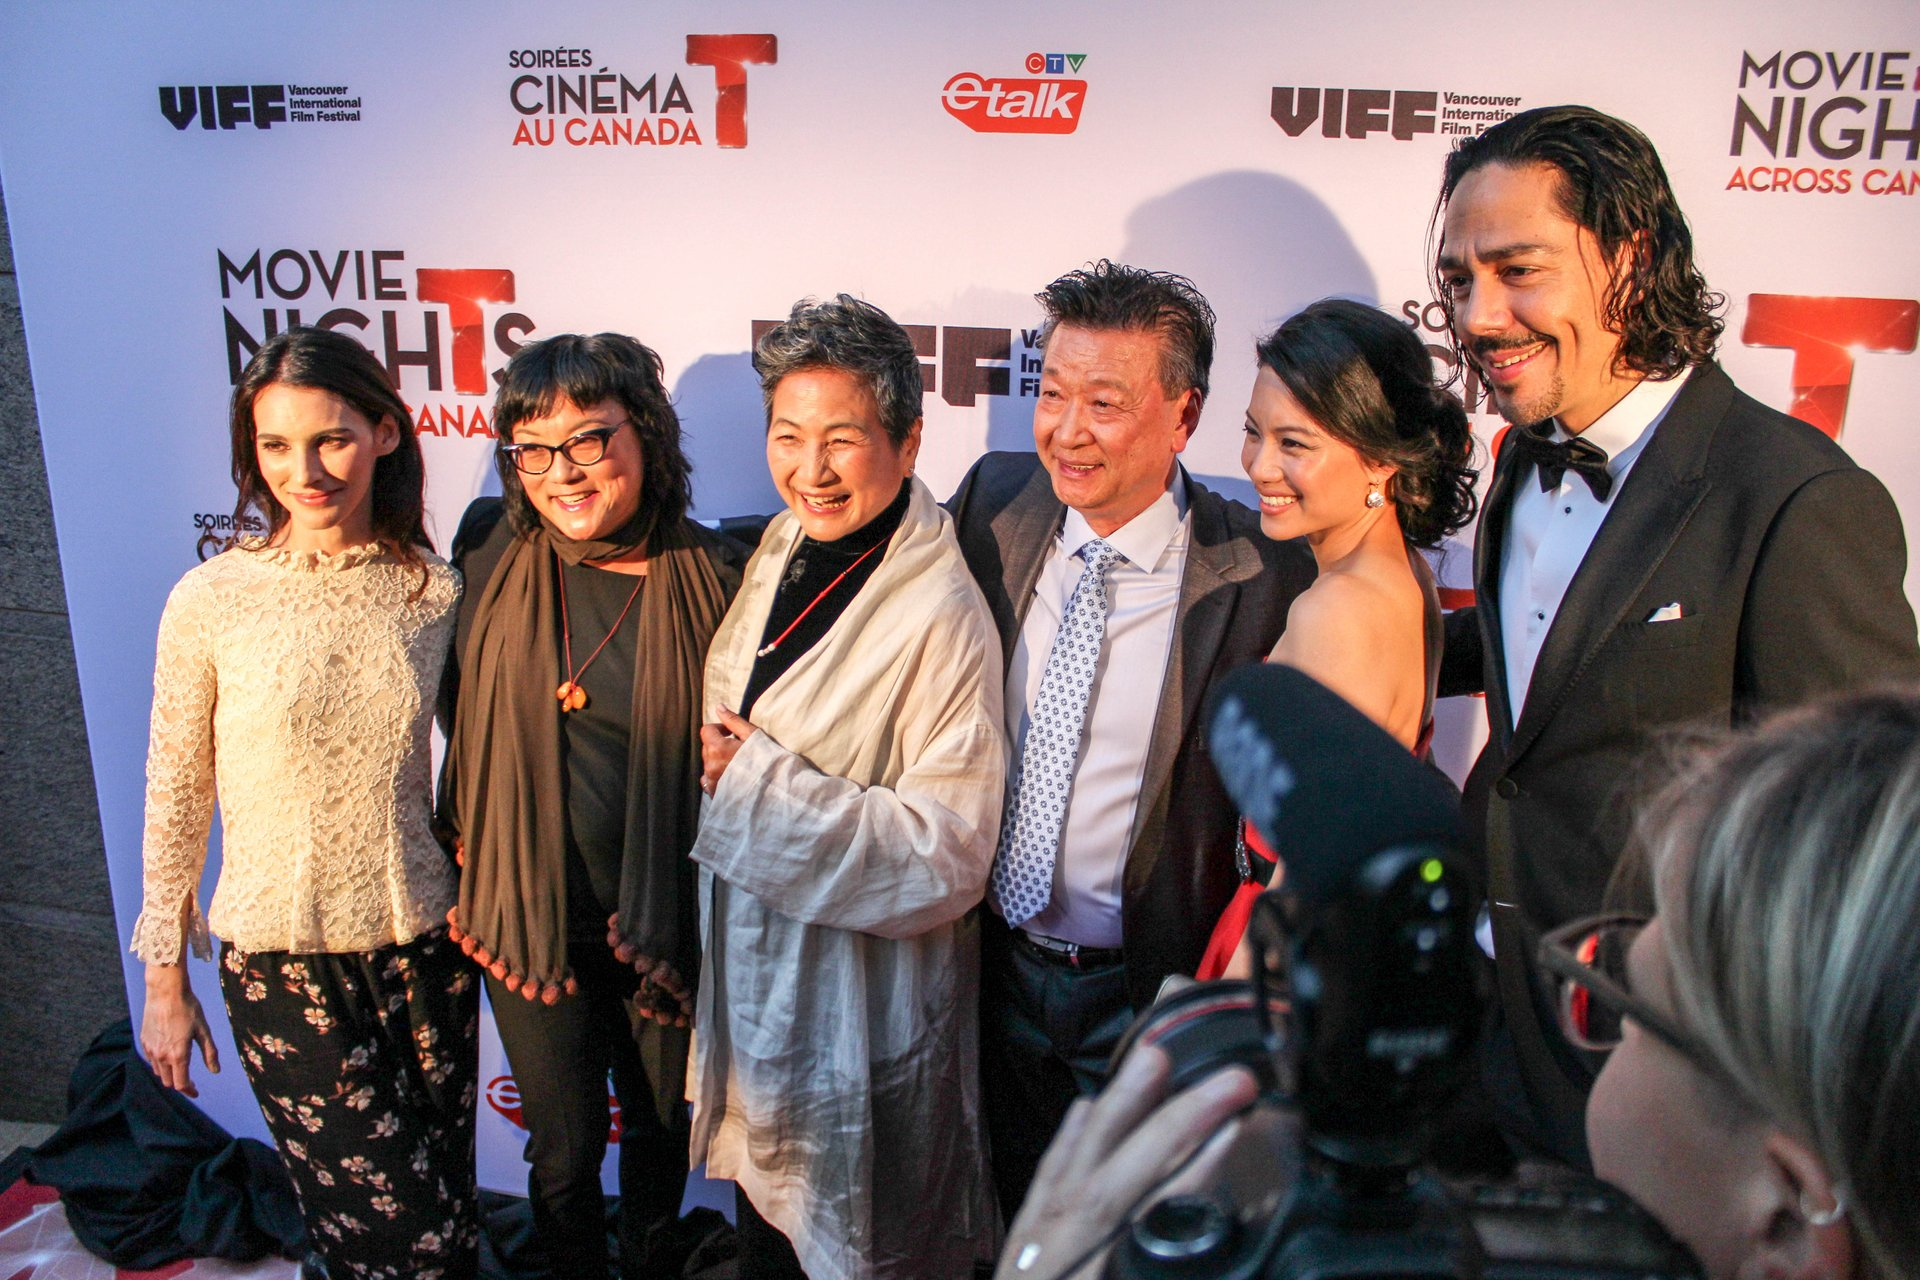 Best time to see Vancouver International Film Festival (VIFF) in Vancouver 2020